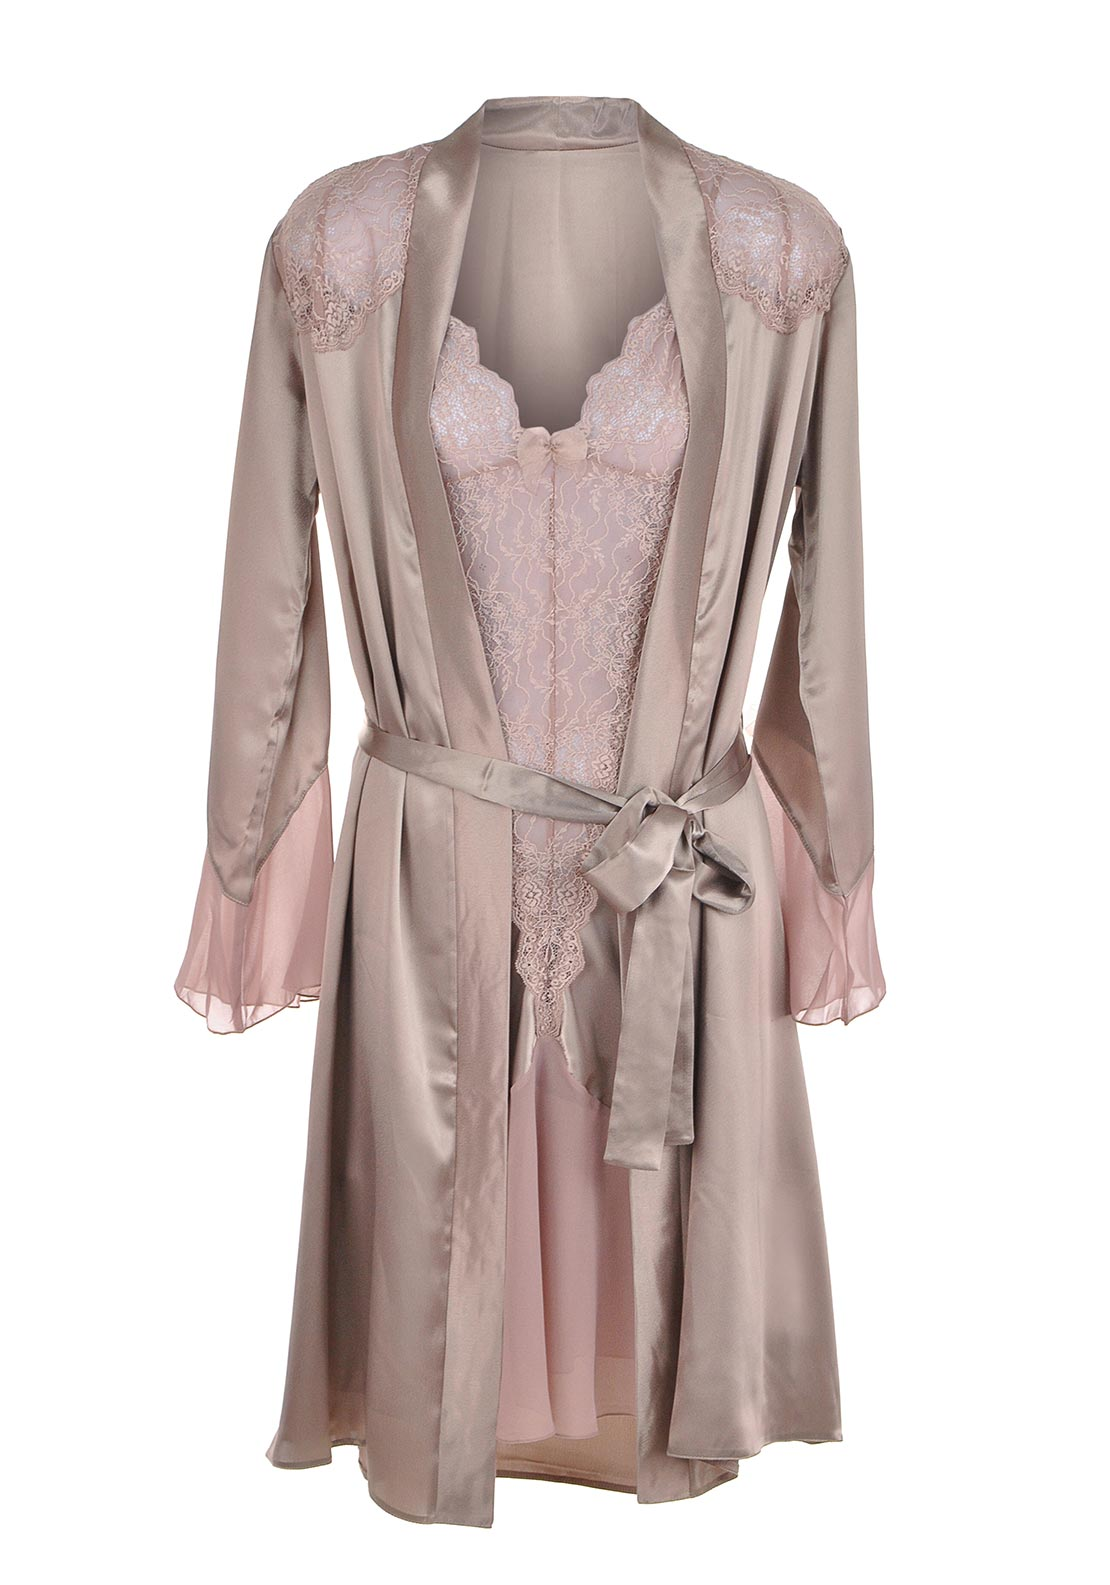 Slenderella Dressing Gown and Nightdress Chemise Set, Pink